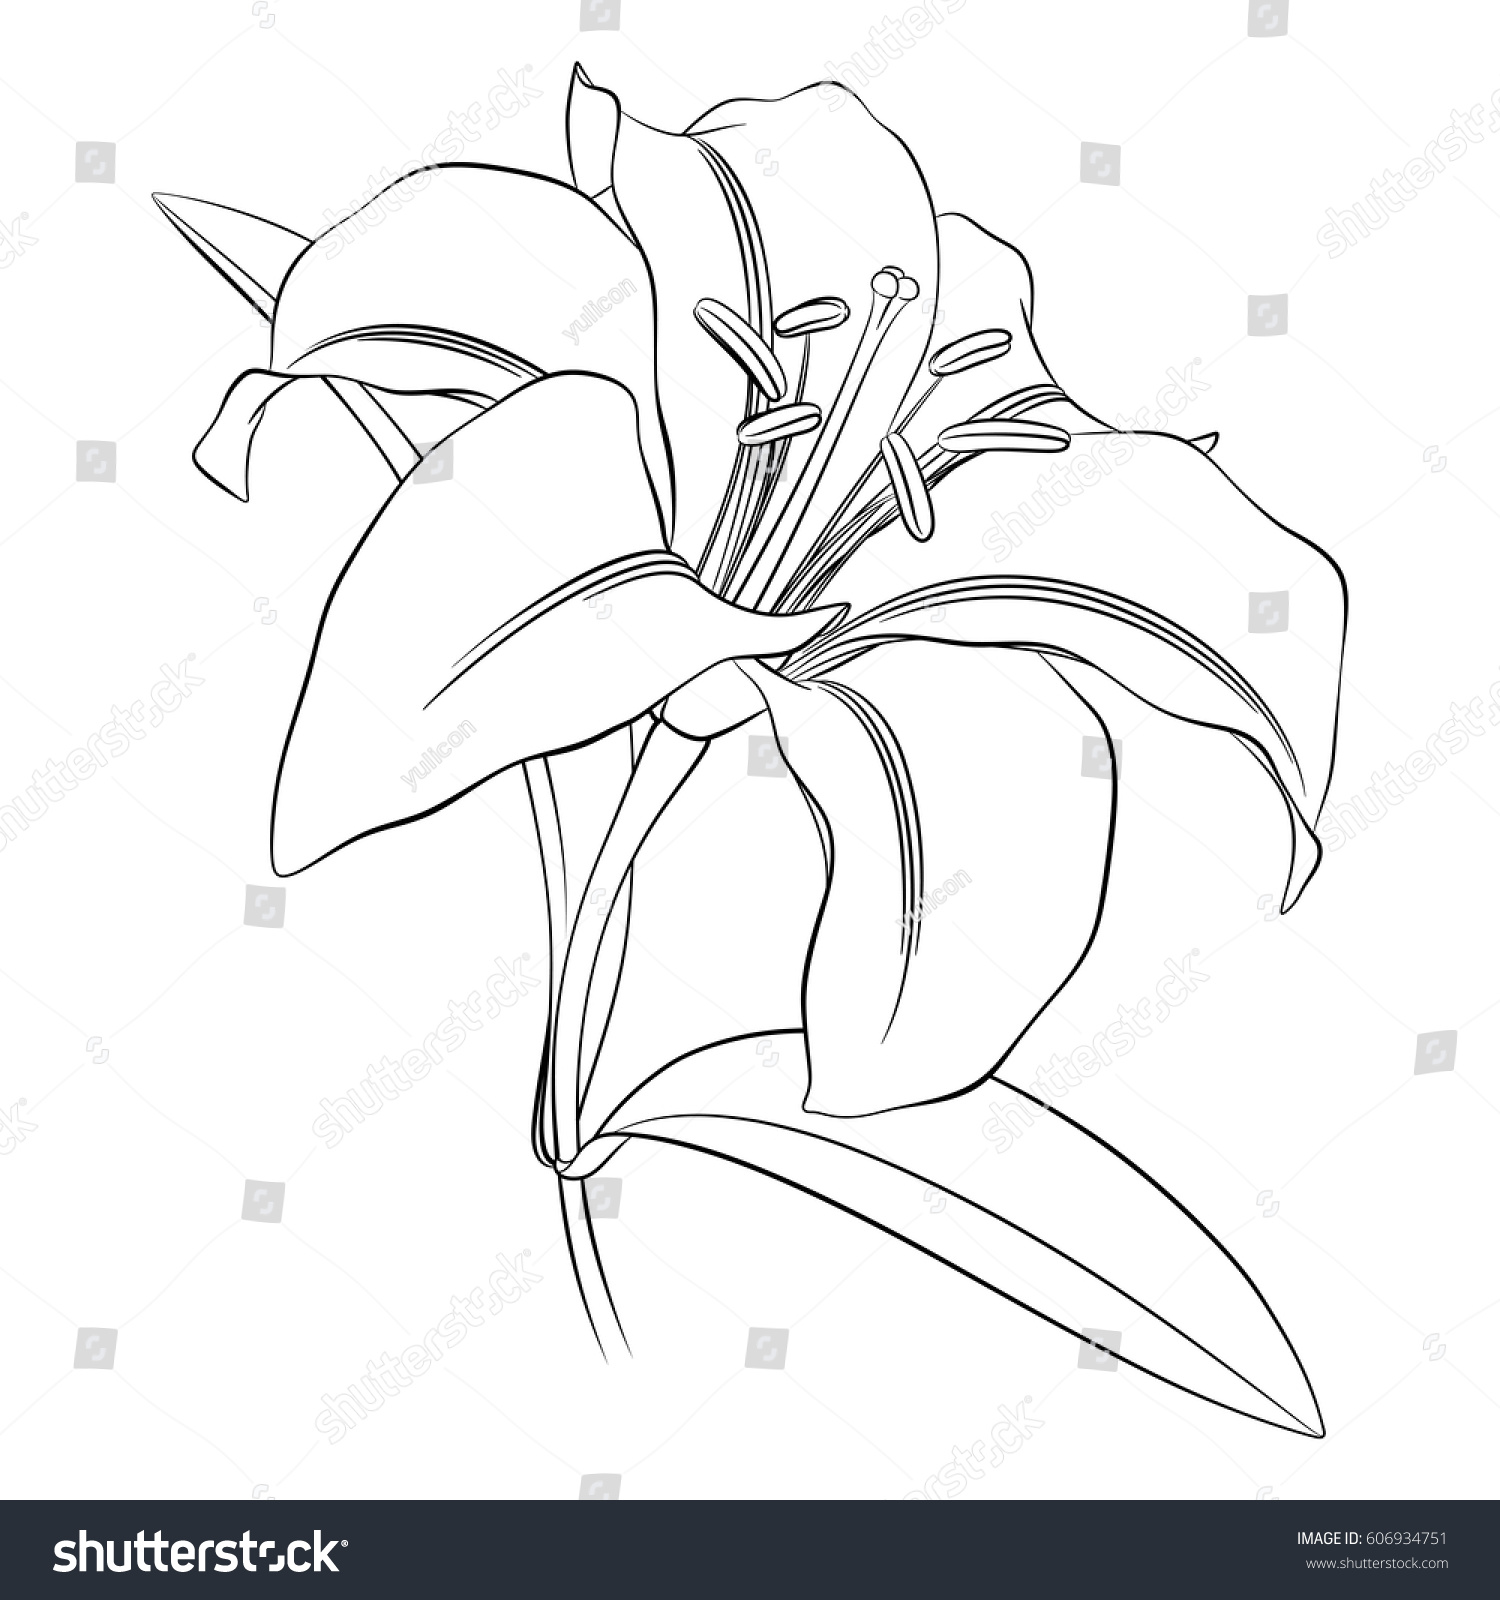 Black outline lily flower on white stock vector royalty free black outline of a lily flower on a white background for coloring izmirmasajfo